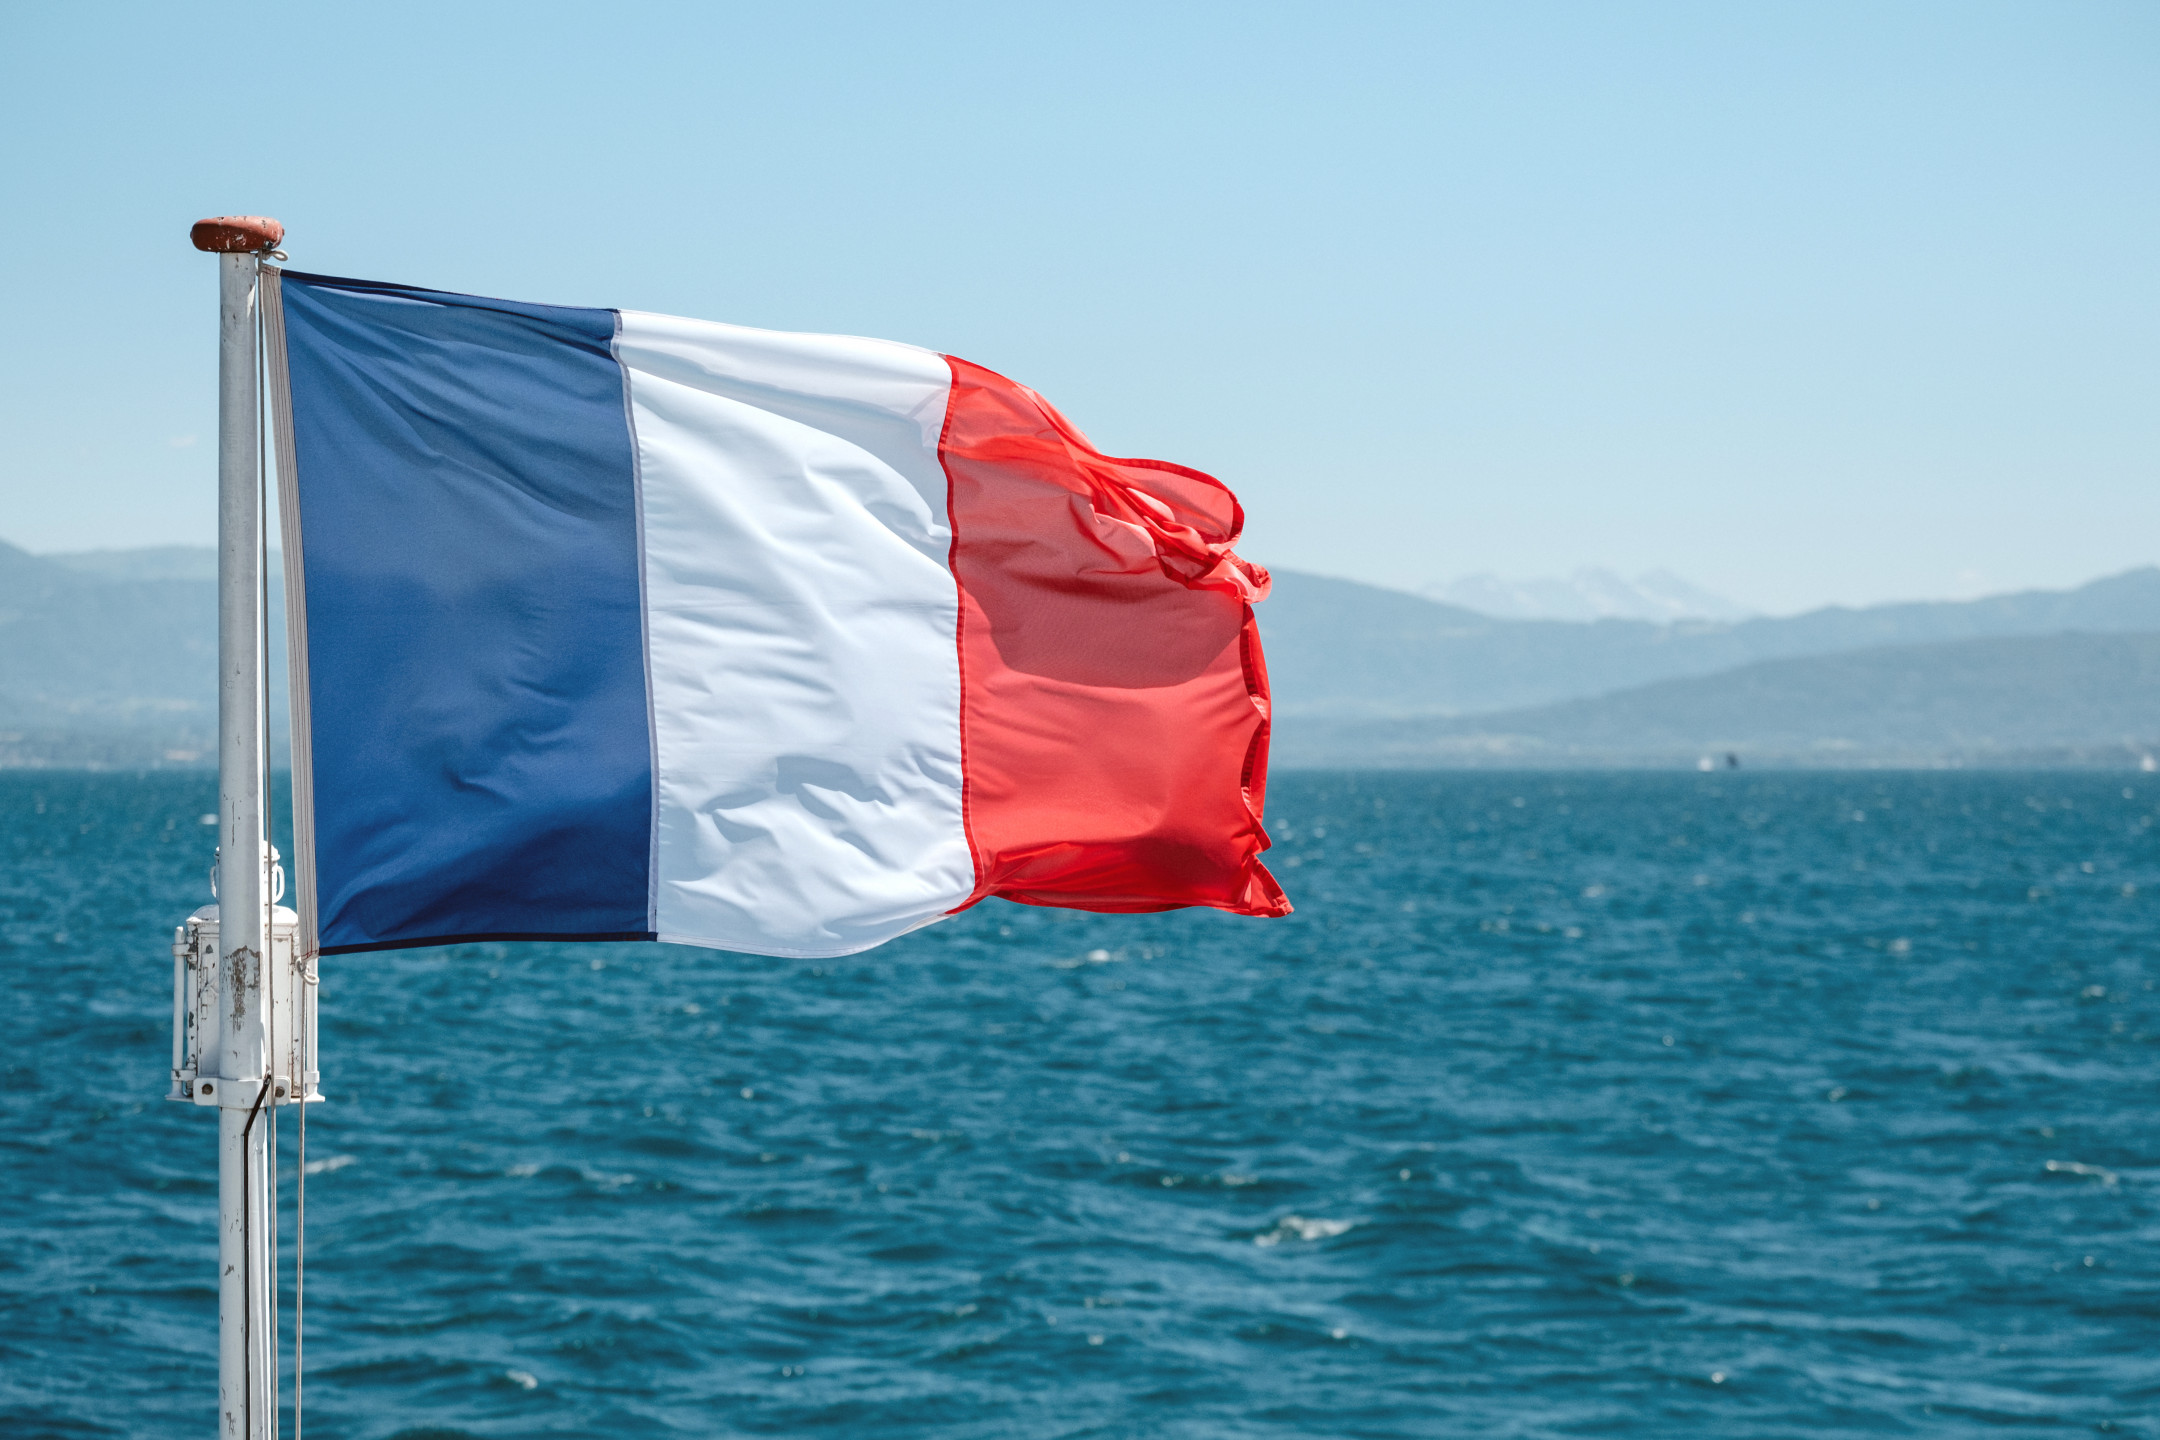 France to approve crypto exchanges under new regulations